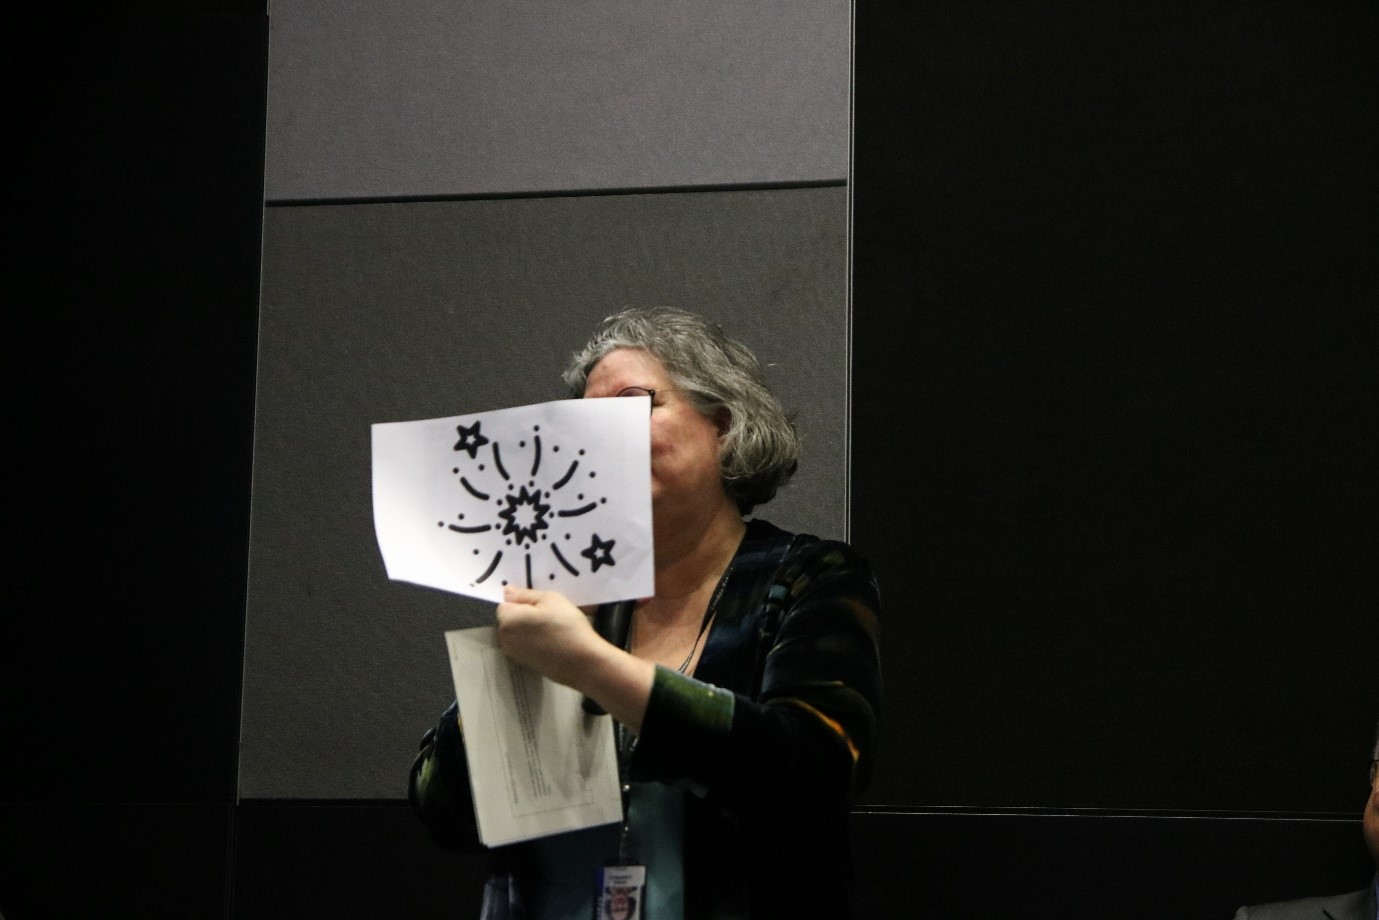 Professor Oona Campbell  used effective props during the Symposium debate